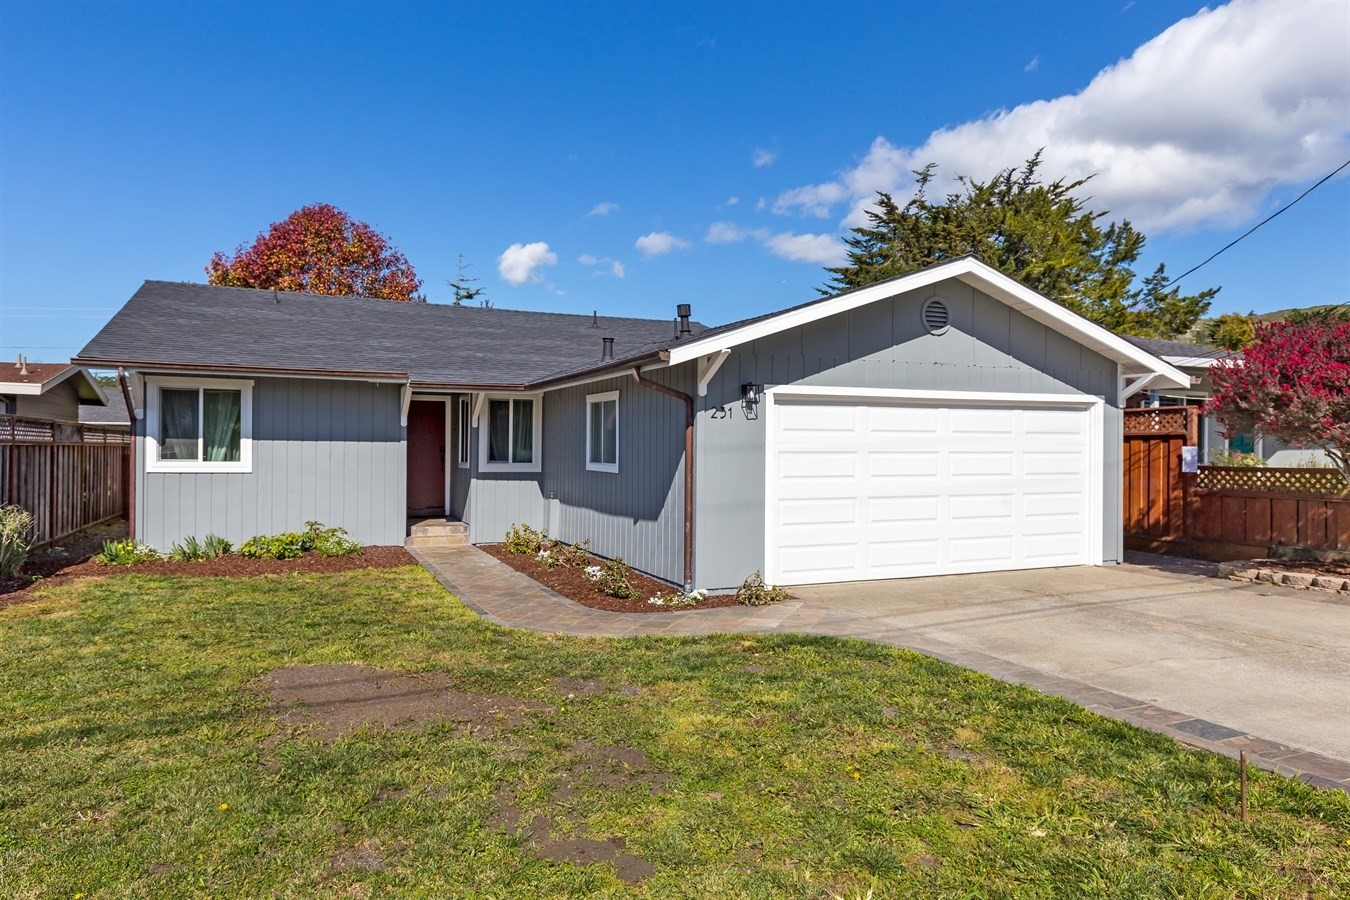 231 Vallejo Street, El Granada, remodeled home for sale